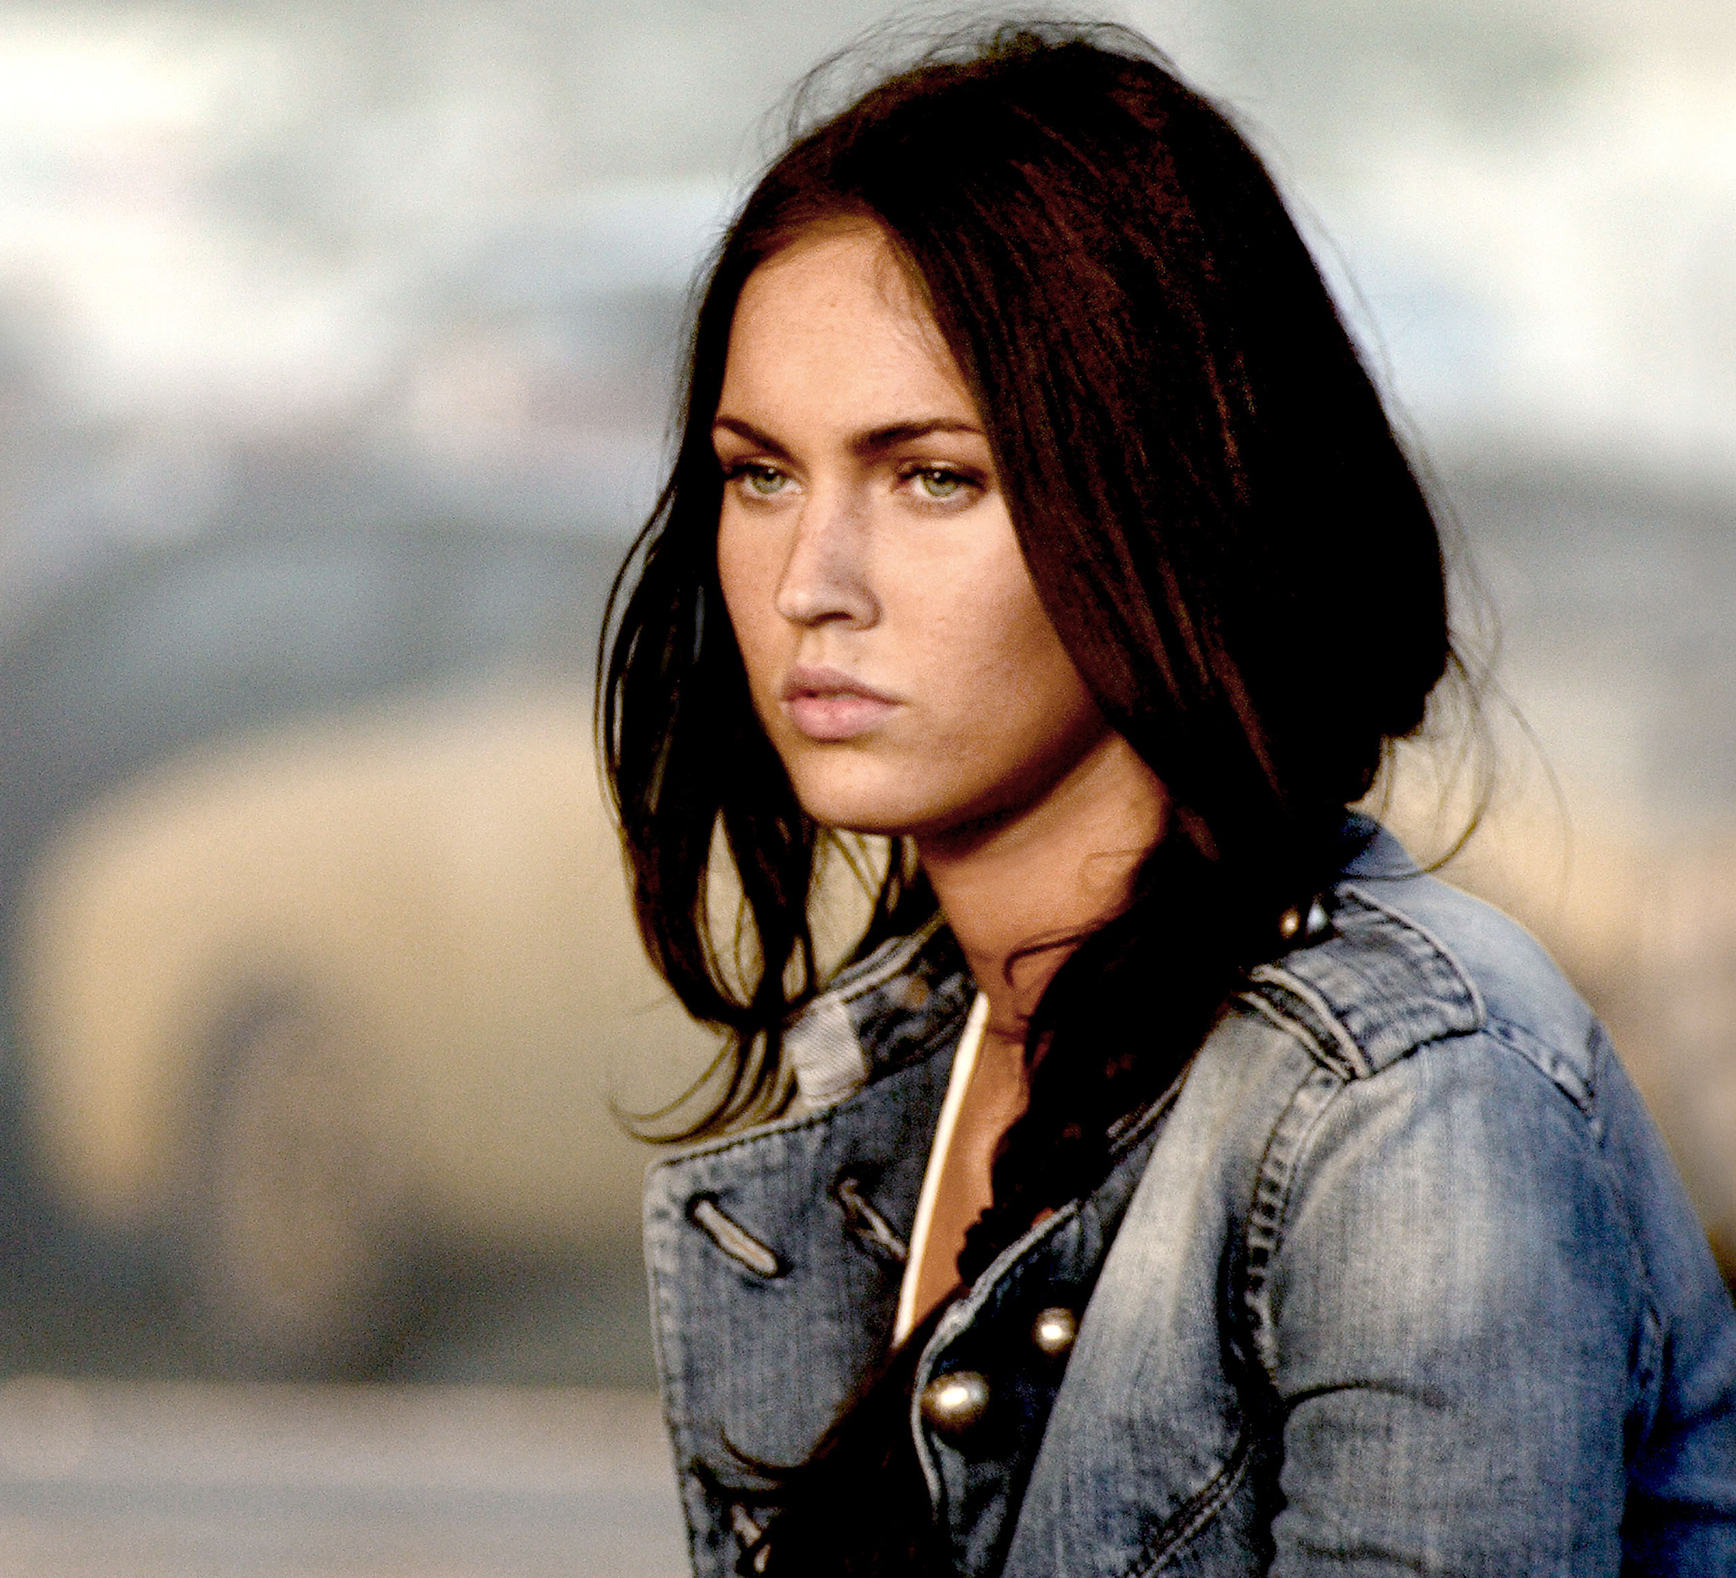 Did the sexualization of Megan Fox in 'Transformers' derail her career? – Film Daily